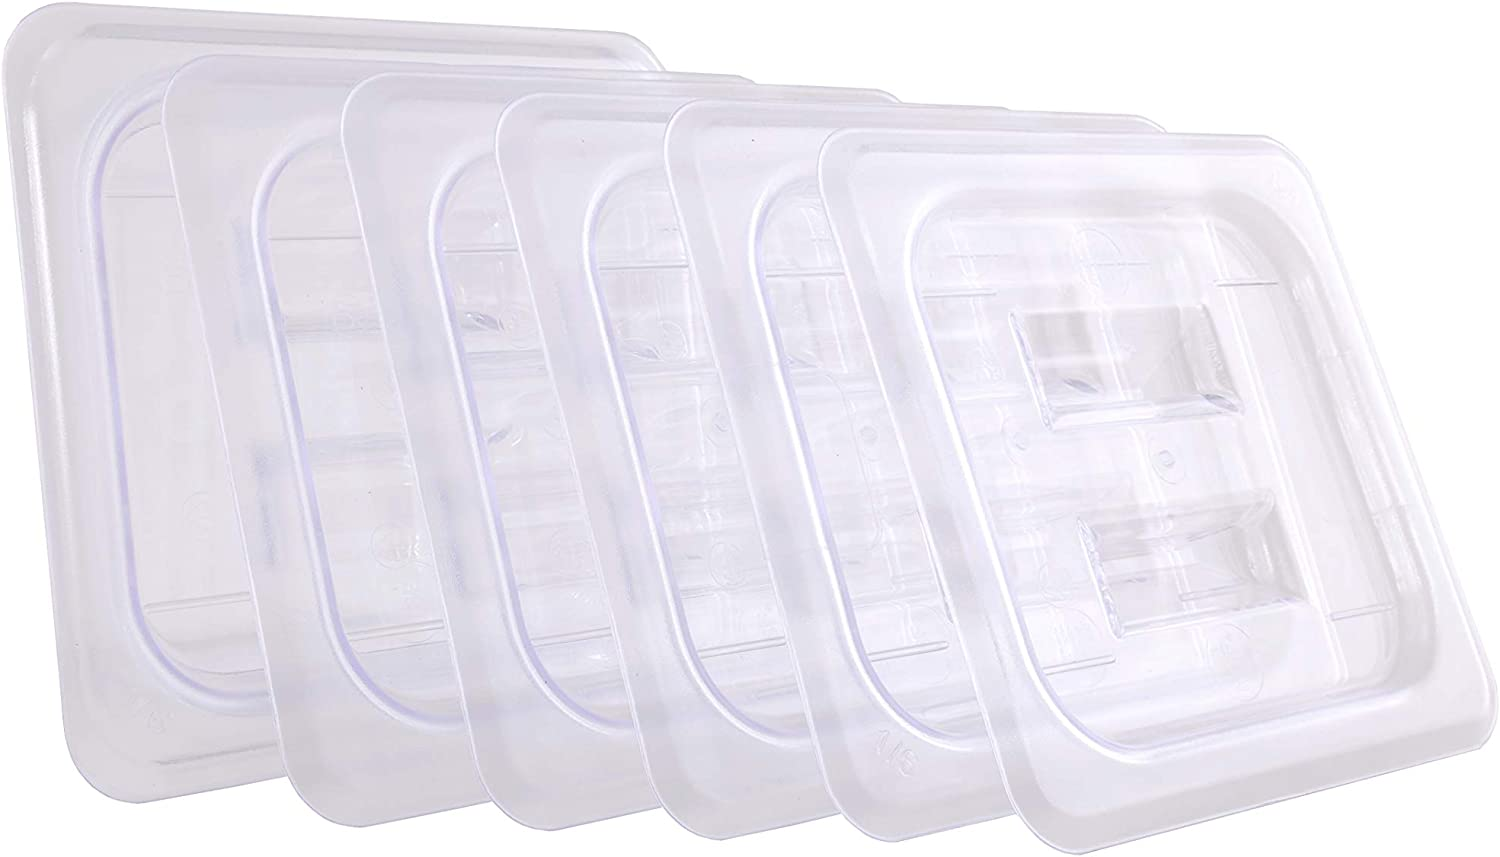 CMI1/6 Size Polycarbonate Food Pans Lid&Cover,Clear - Pack of 6